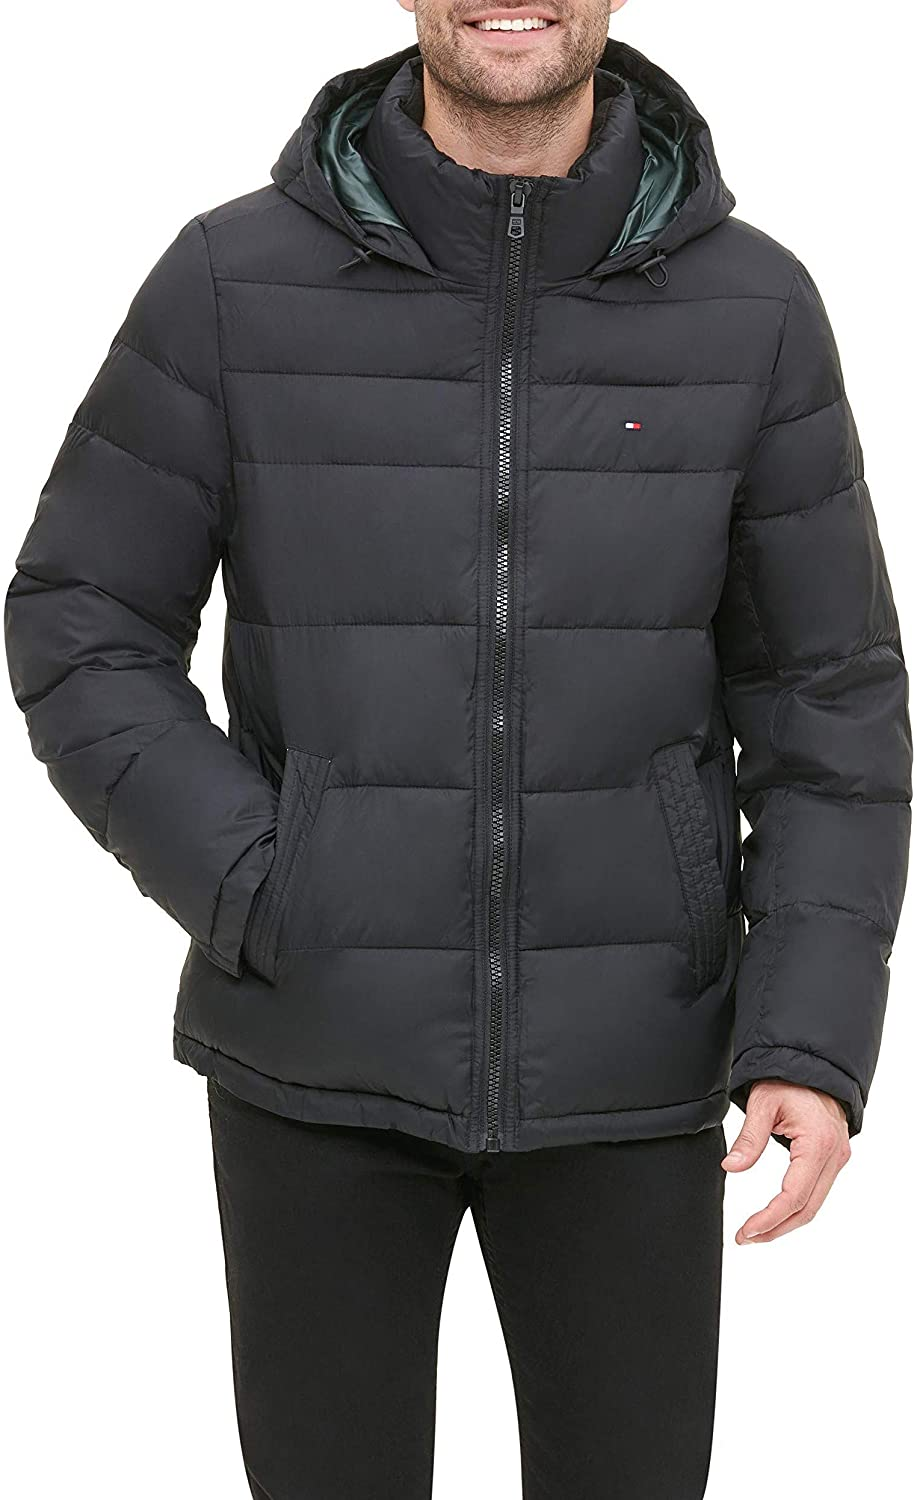 Tommy Hilfiger men/'s Classic Hooded Puffer Jacket